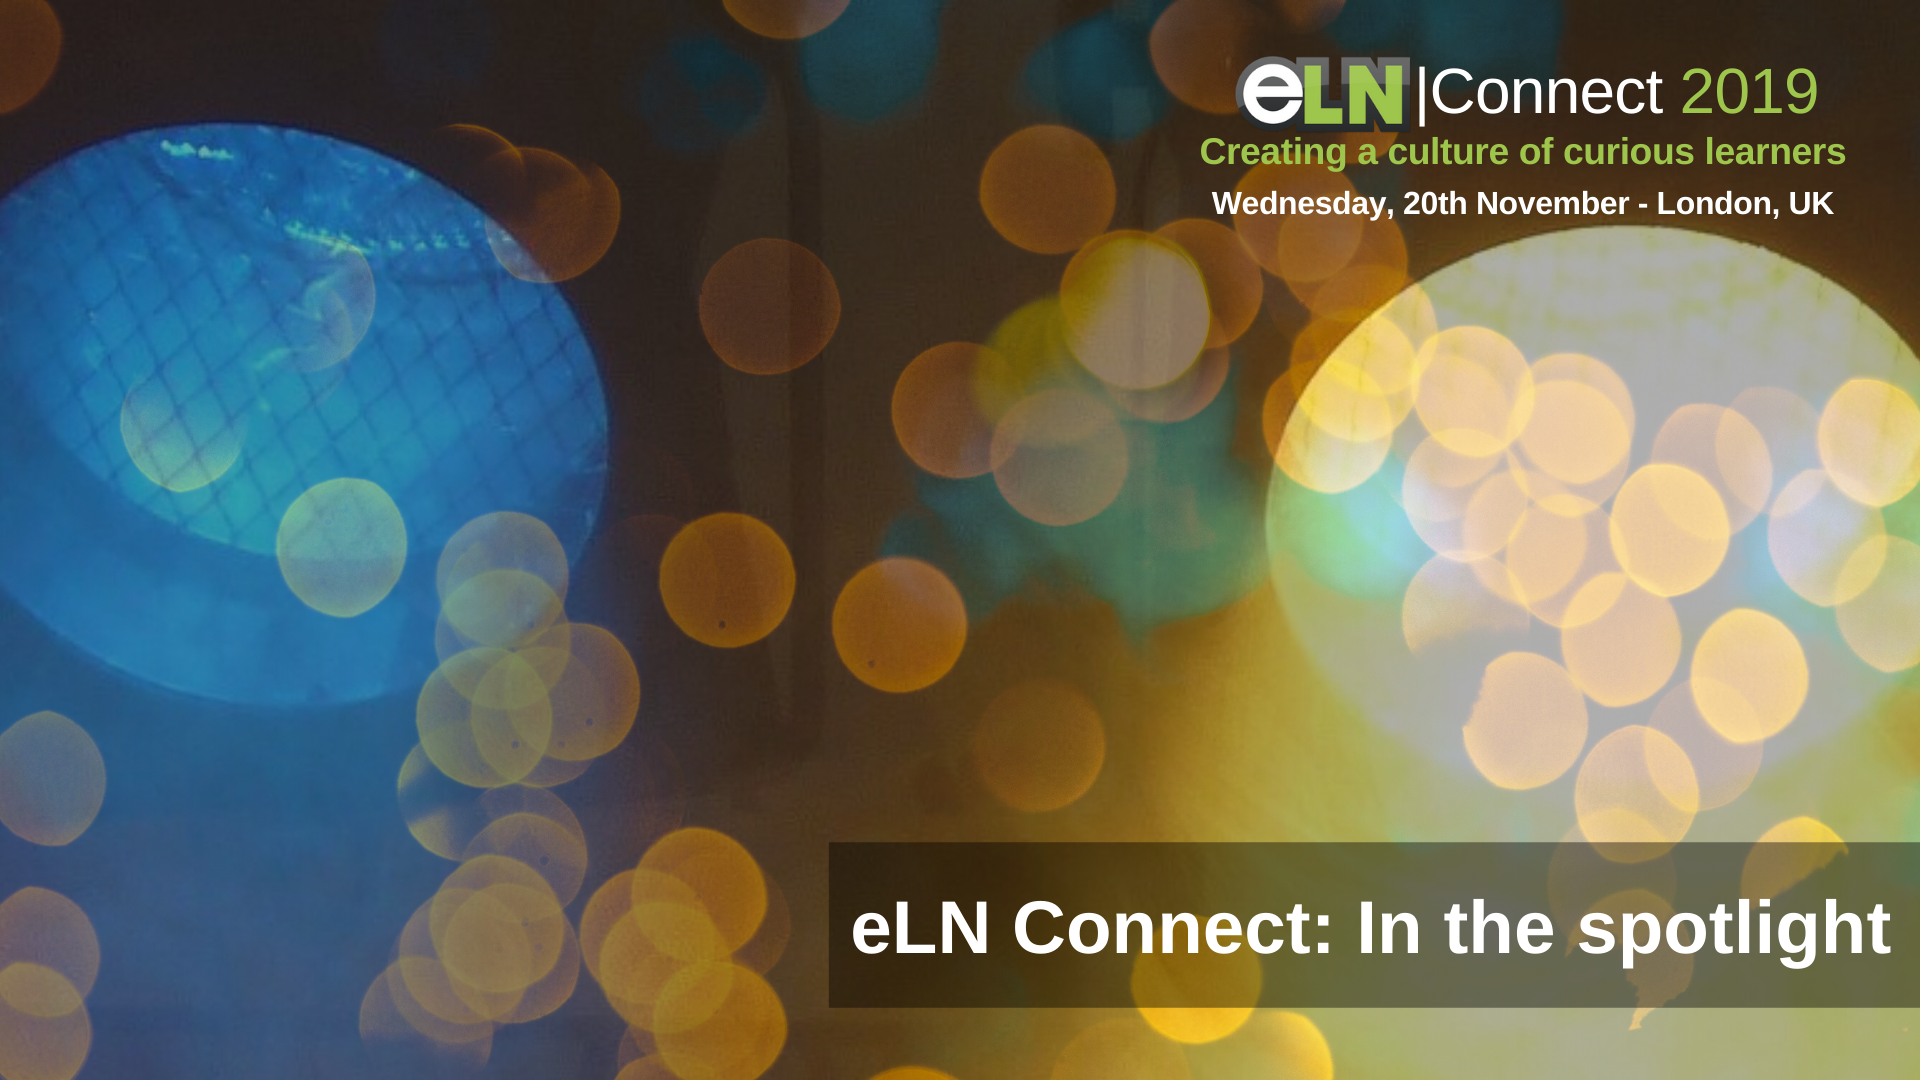 eLN Connect in the spotlight